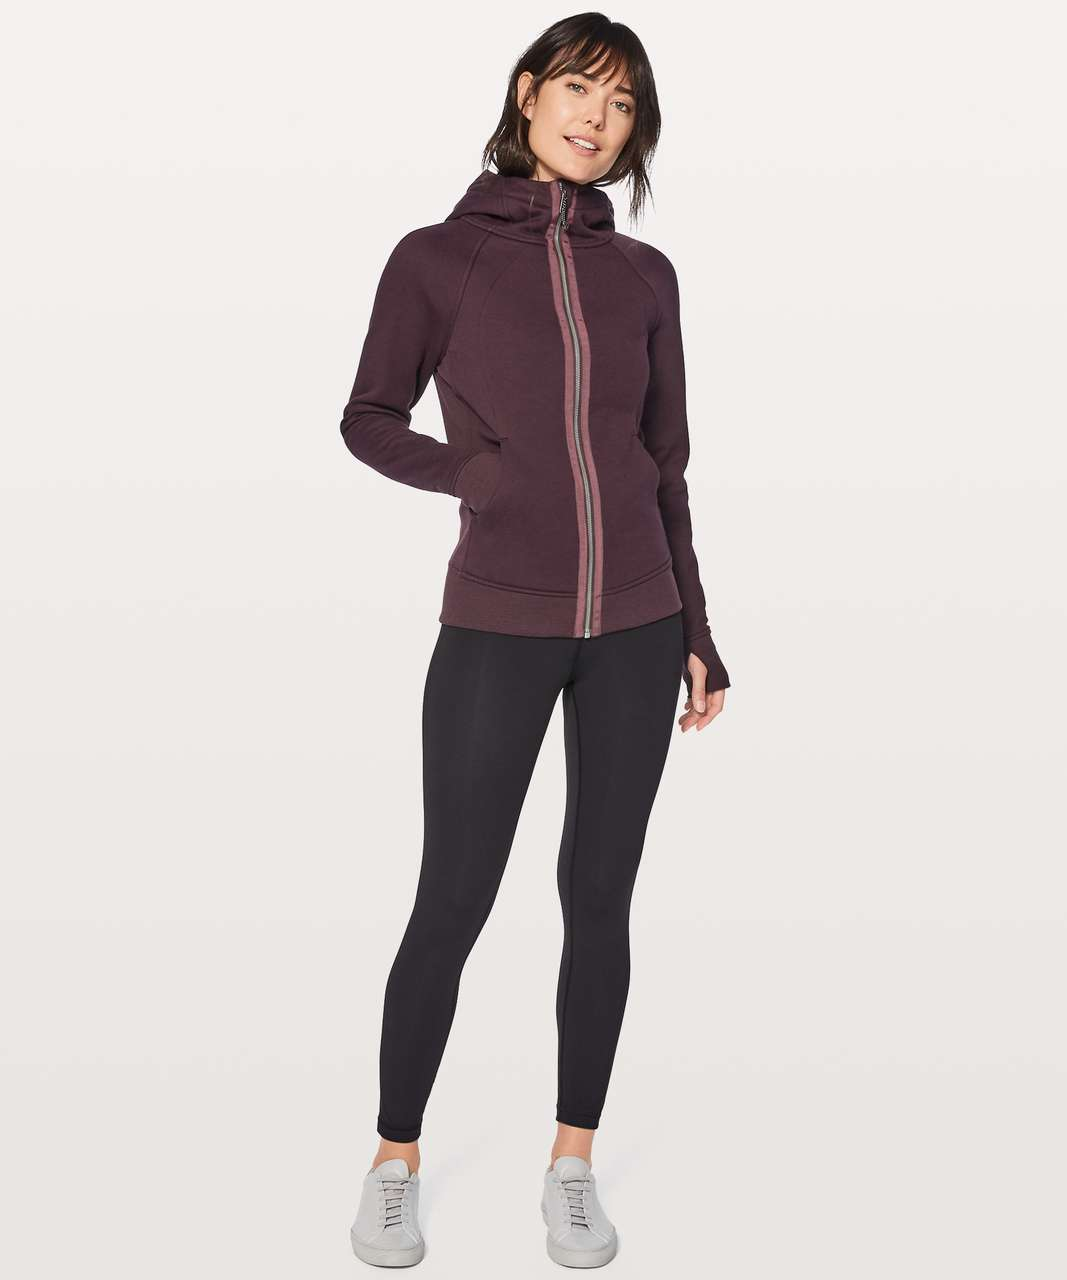 Lululemon Light As Warmth Scuba - Black Cherry